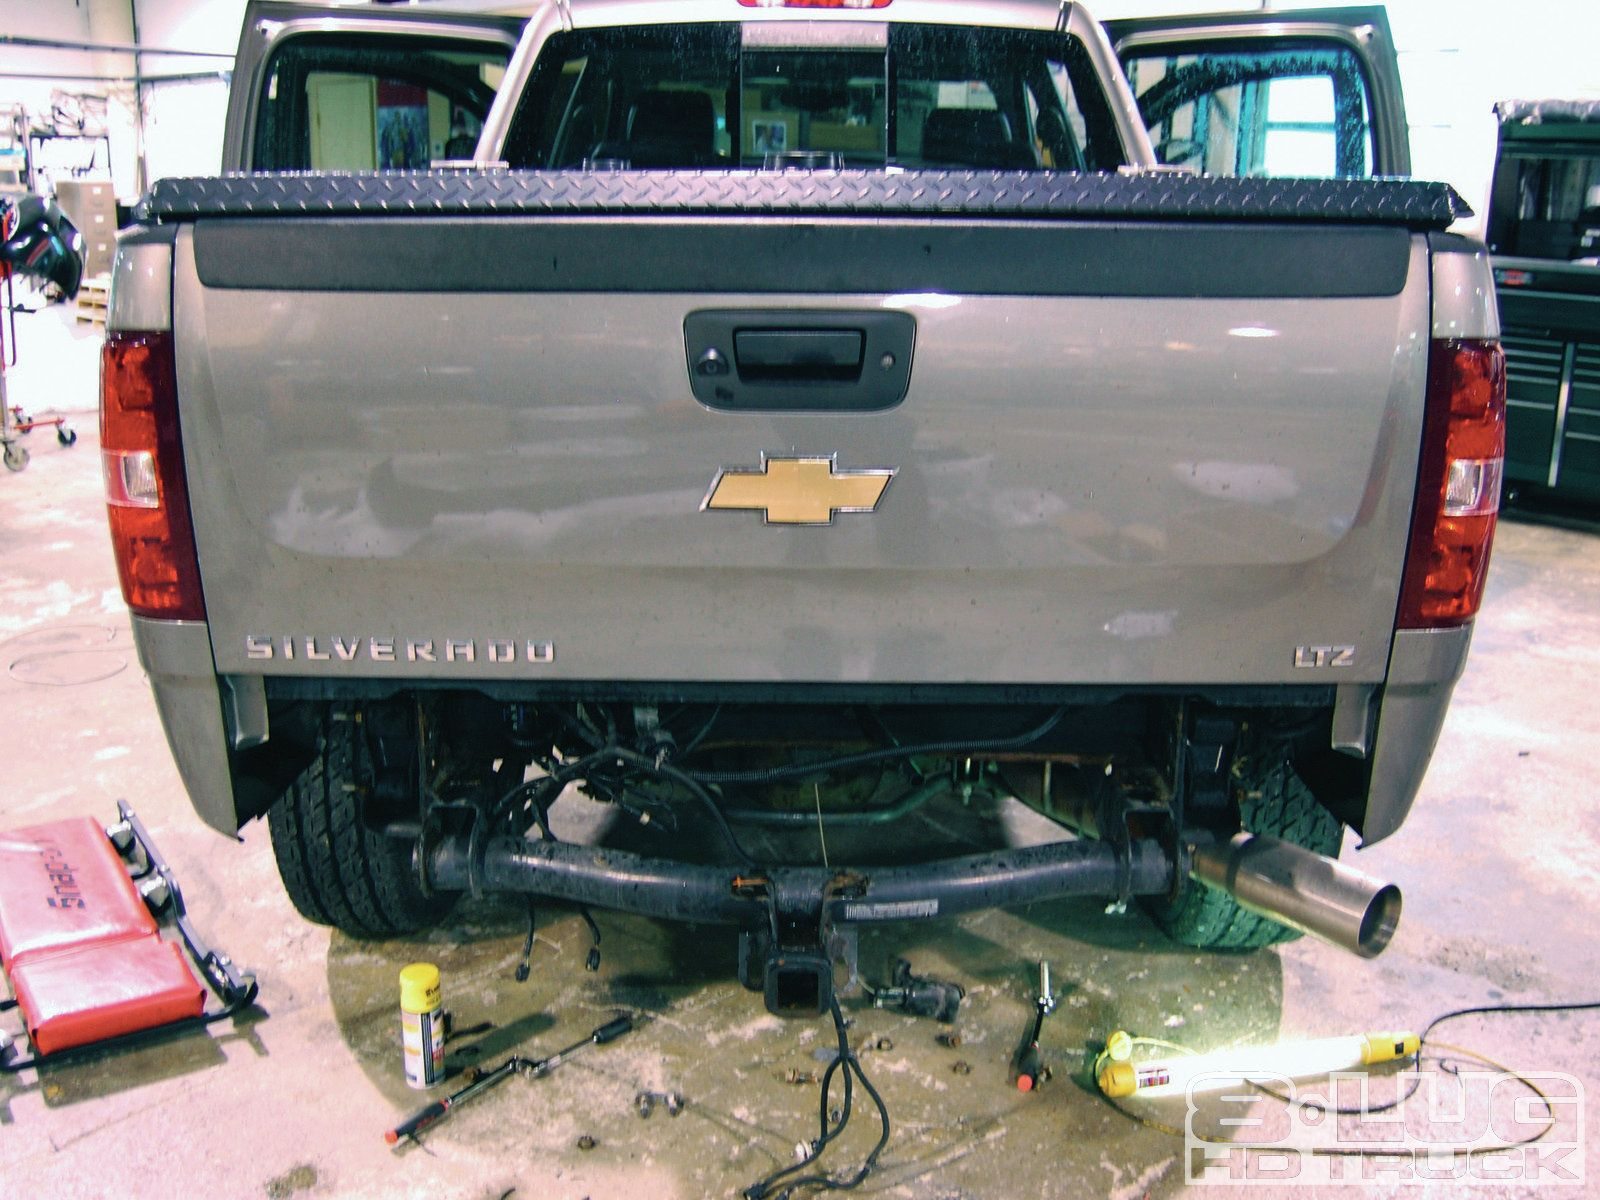 1210-8l-25+winch-time-ultimate-tow-and-work-truck-upgrades+remove-factory-bumper.jpg